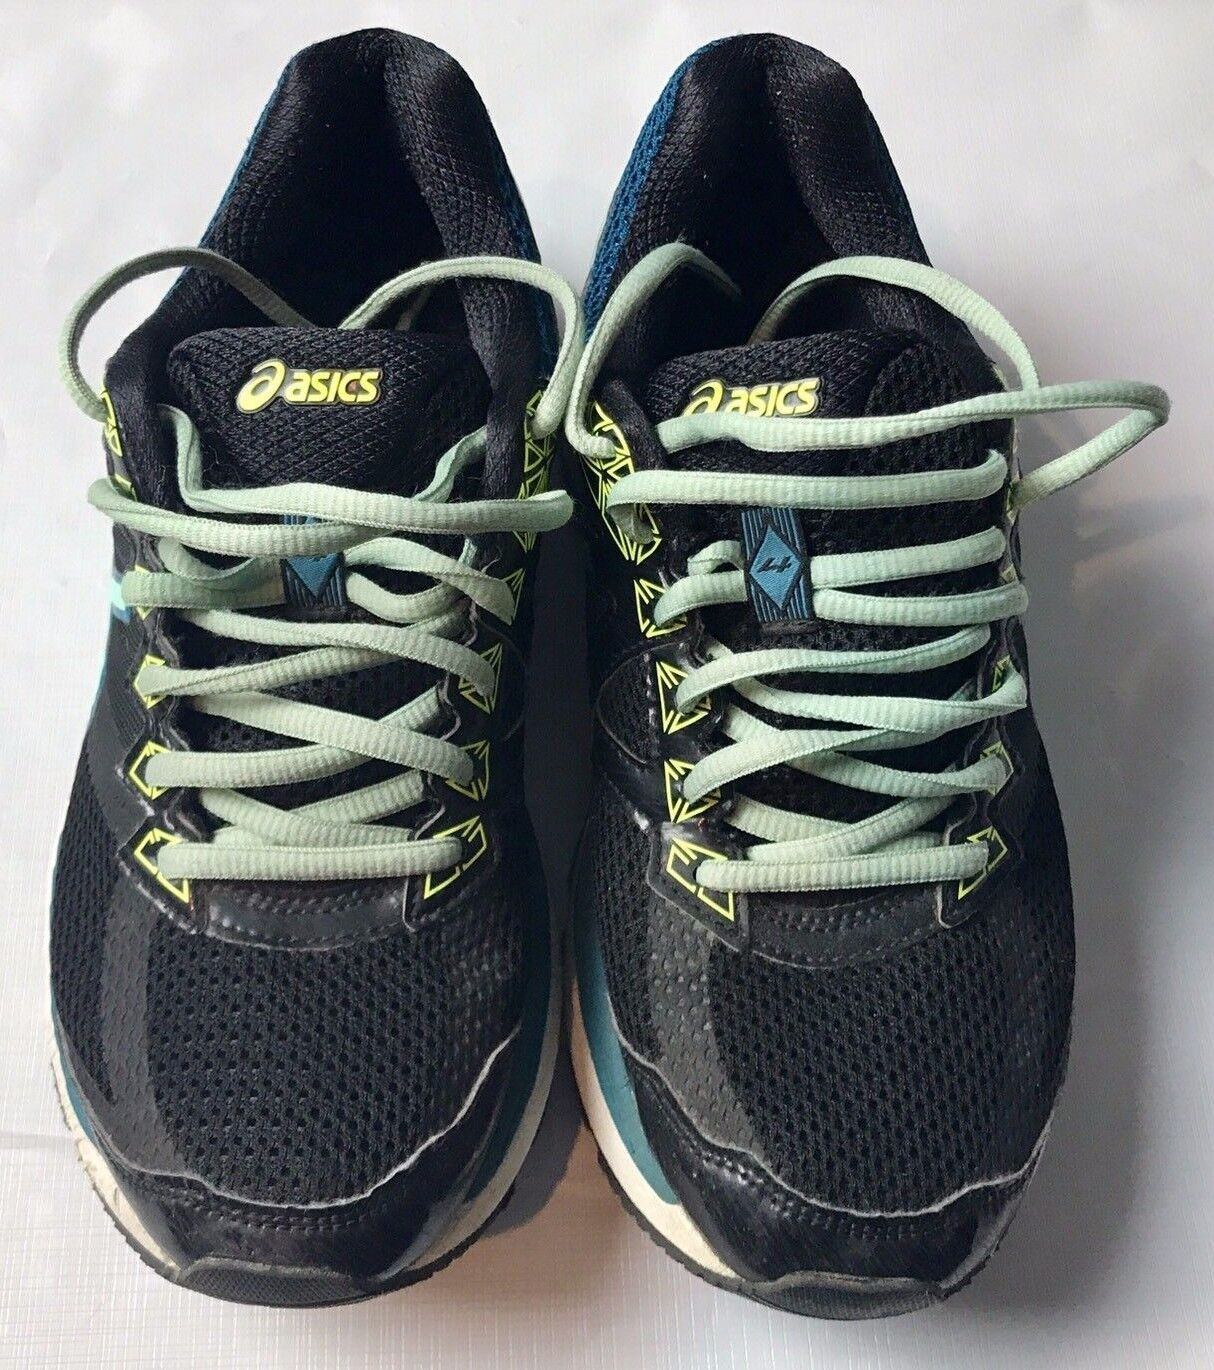 ASICS Donna  GT 2000 4 T656N RUNNING SHOES SIZE SIZE SHOES 8 be9890